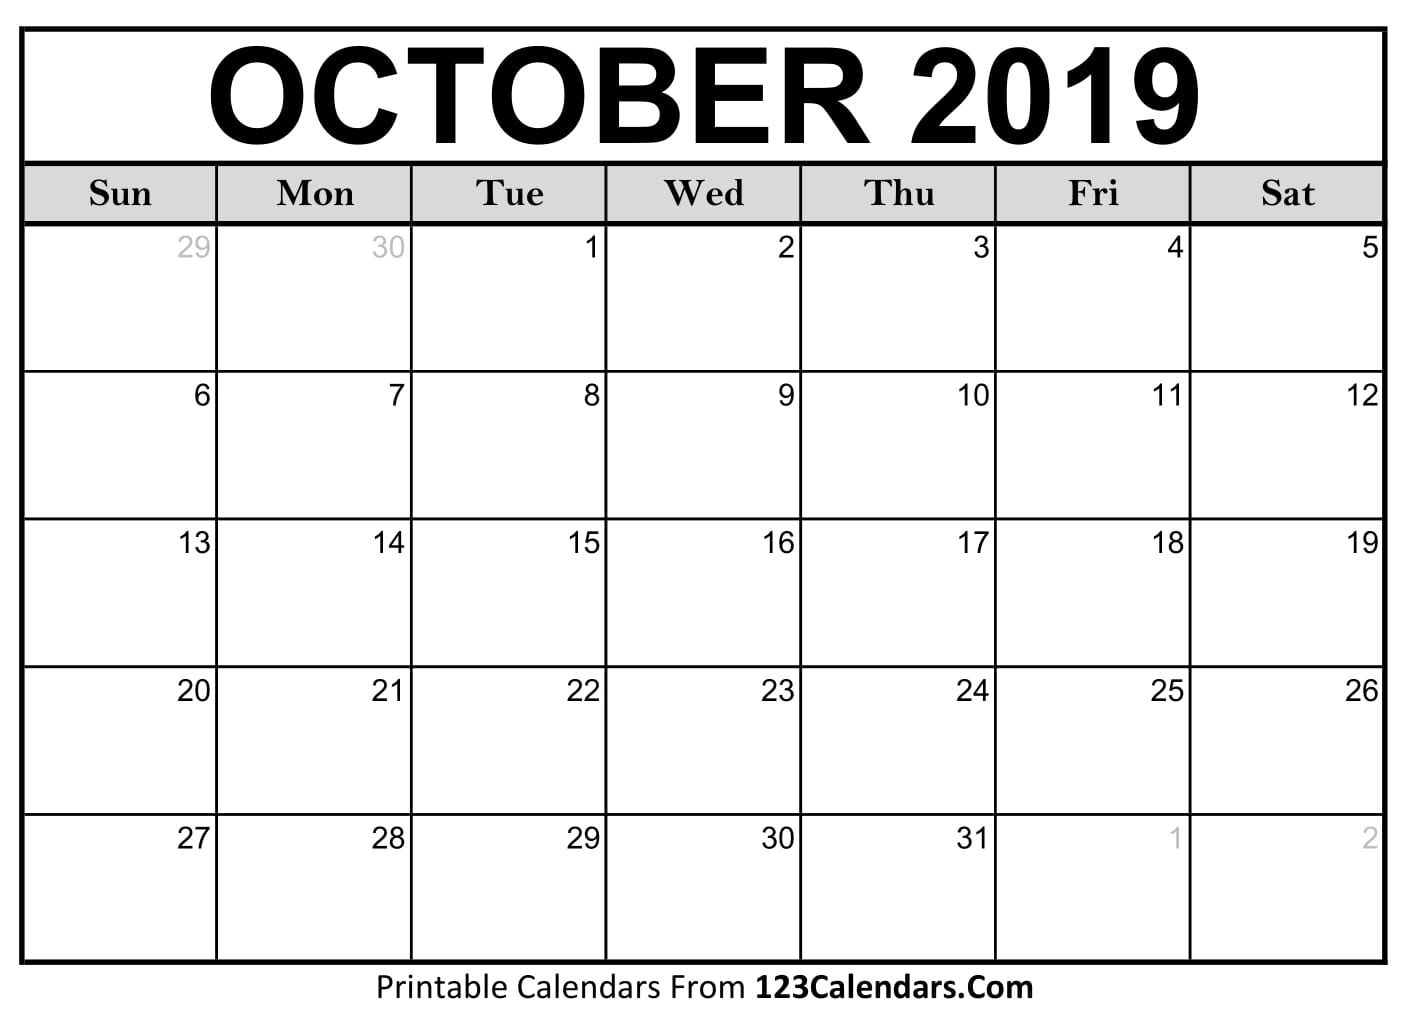 graphic about October Calendar Printable titled Oct 2019 Printable Calendar